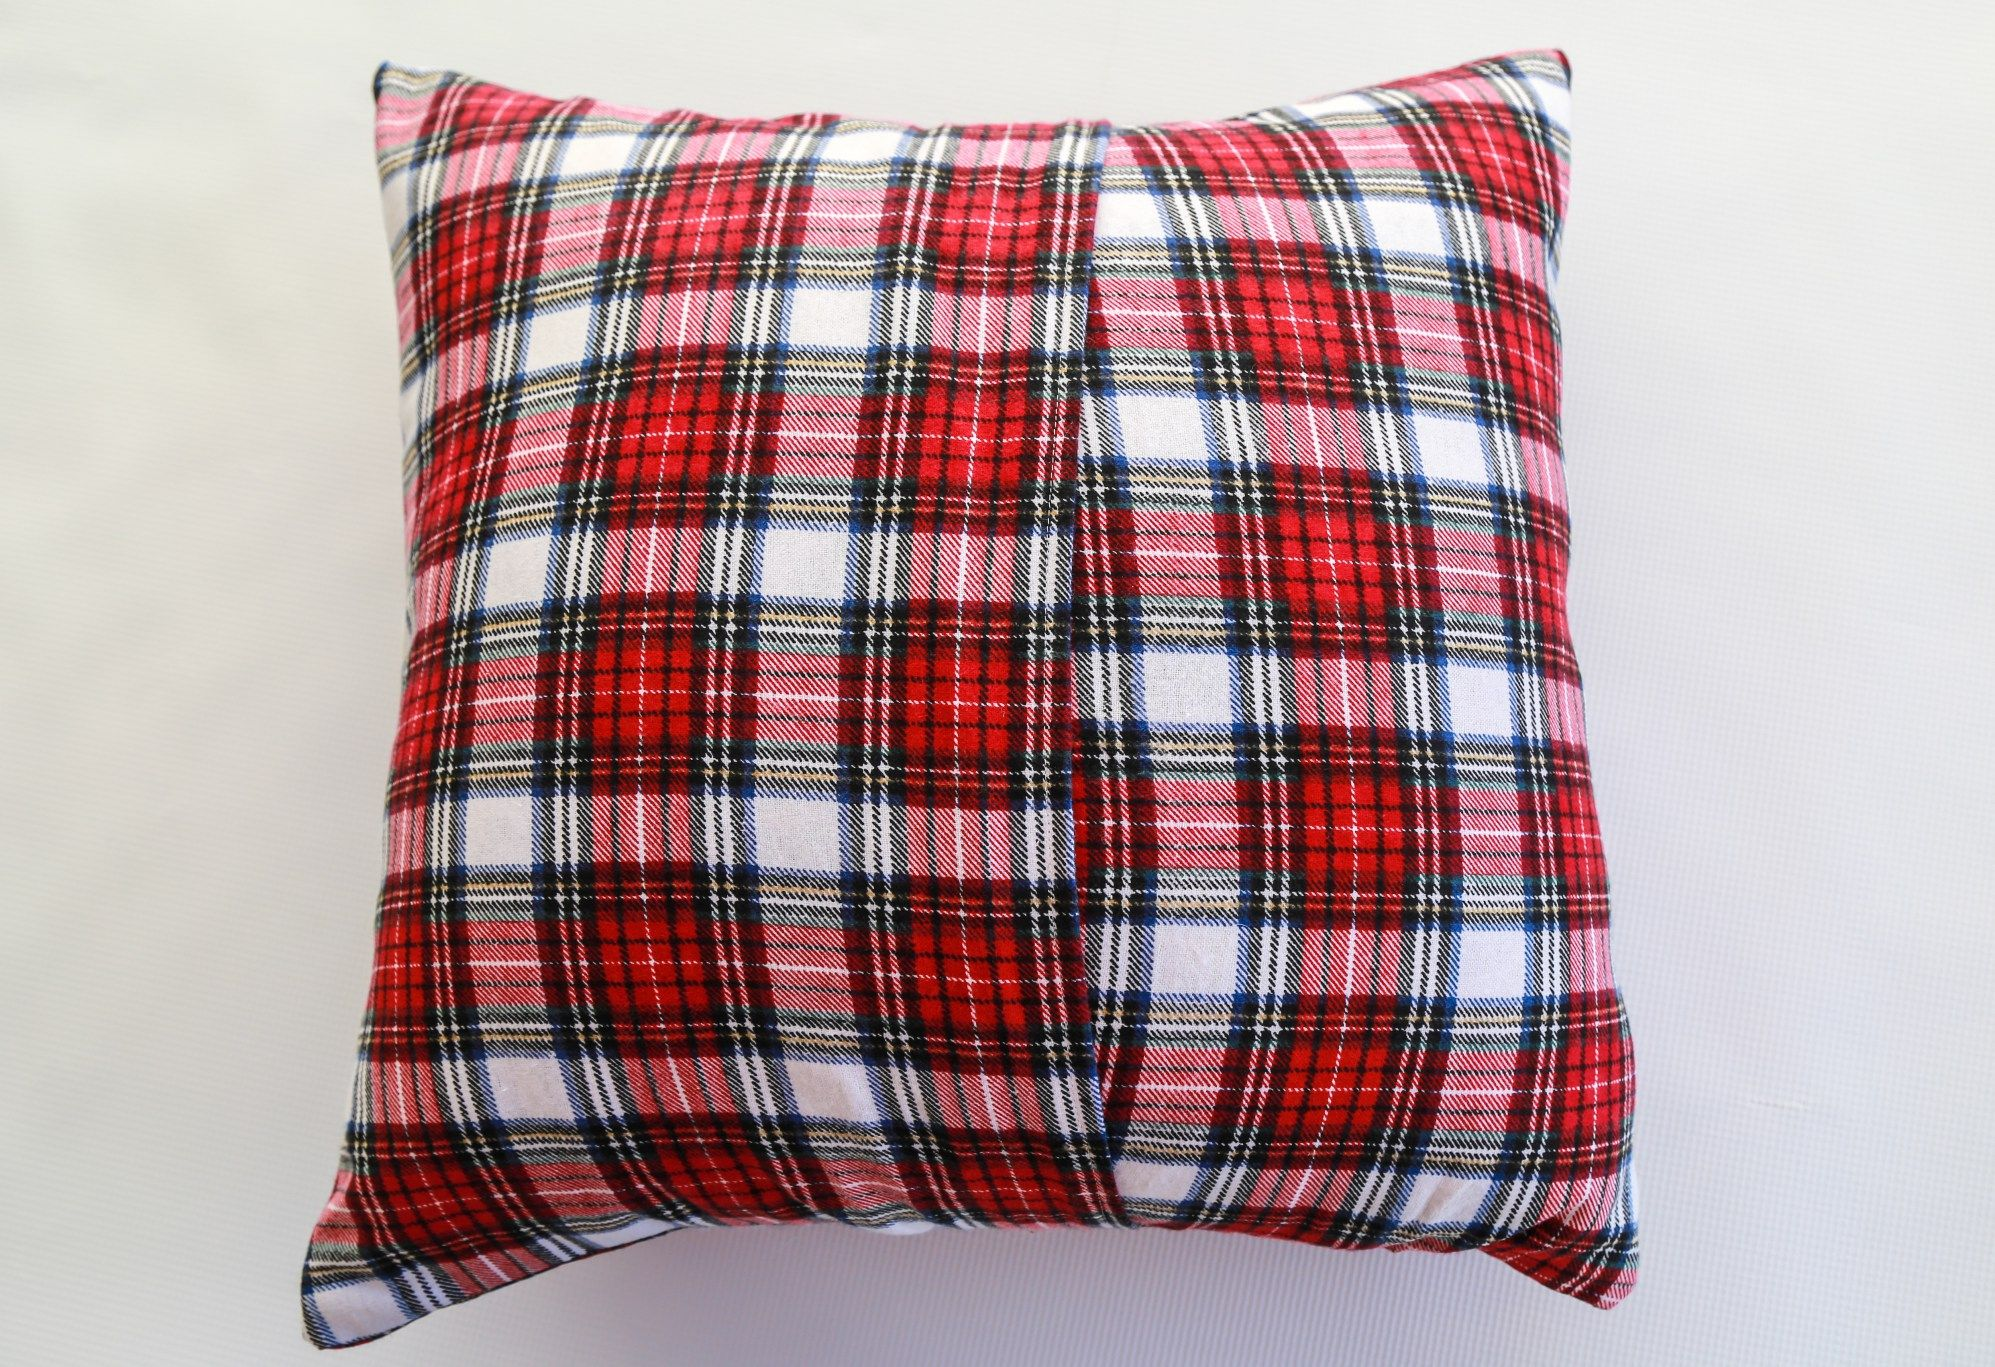 How to make winterholiday pillow slipcovers tutorial sewing